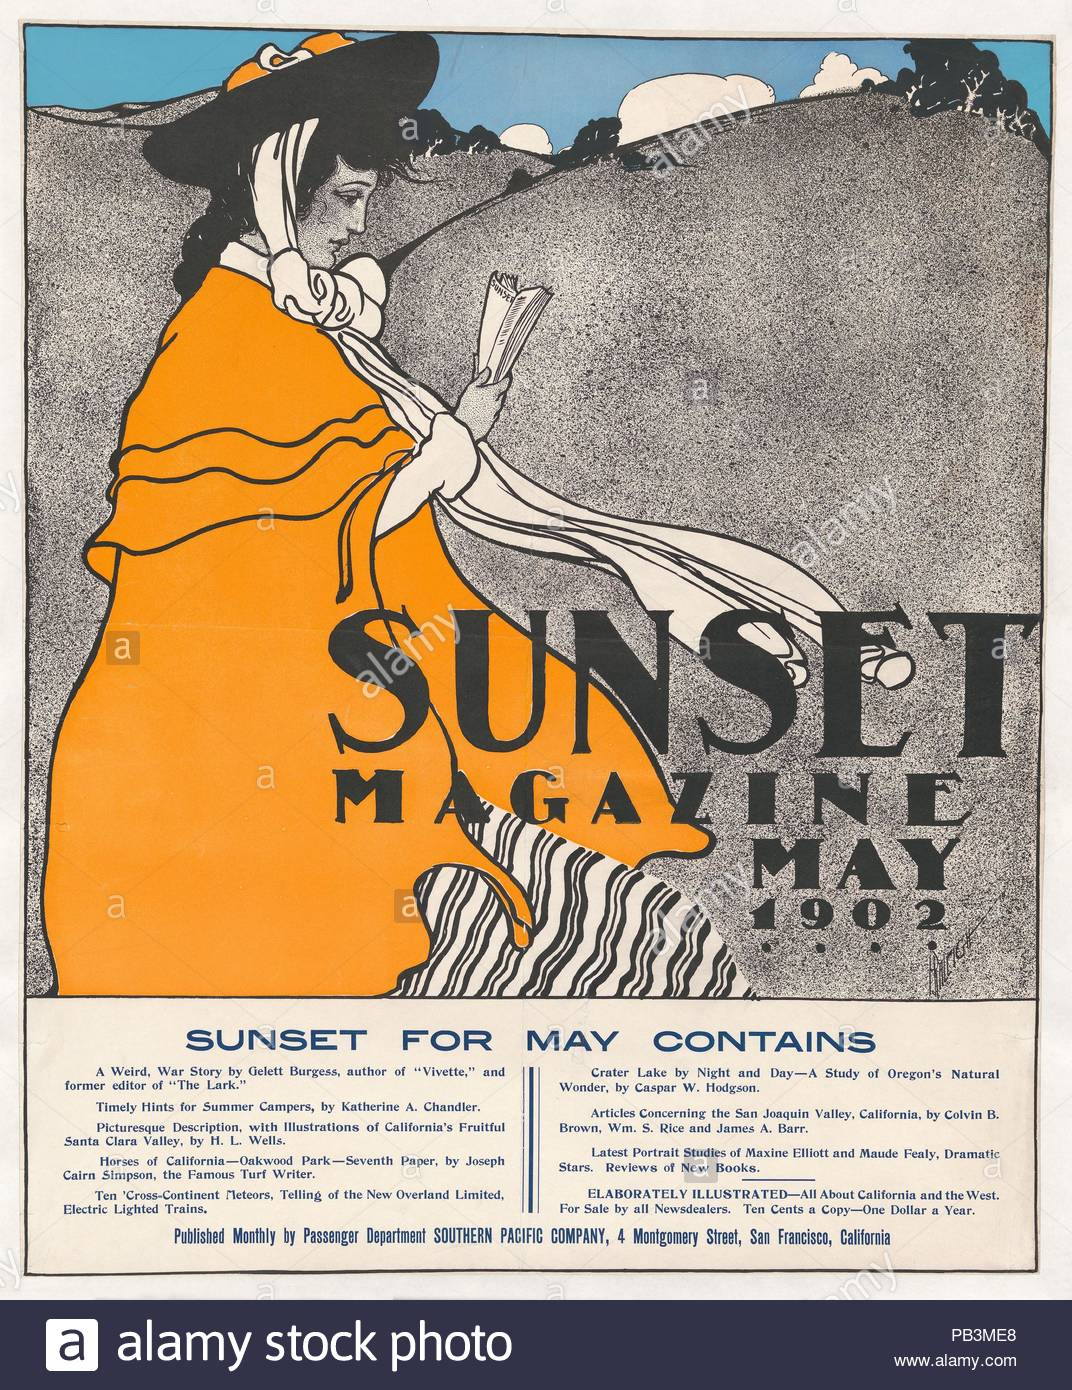 Sunset Magazine: May. Artist: Henry Patrick Raleigh (American, Portland, Oregon 1880-1944 New York). Dimensions: Sheet: 26 1/4 × 21 1/2 in. (66.7 × 54.6 cm). Date: 1902. Museum: Metropolitan Museum of Art, New York, USA. - Stock Image